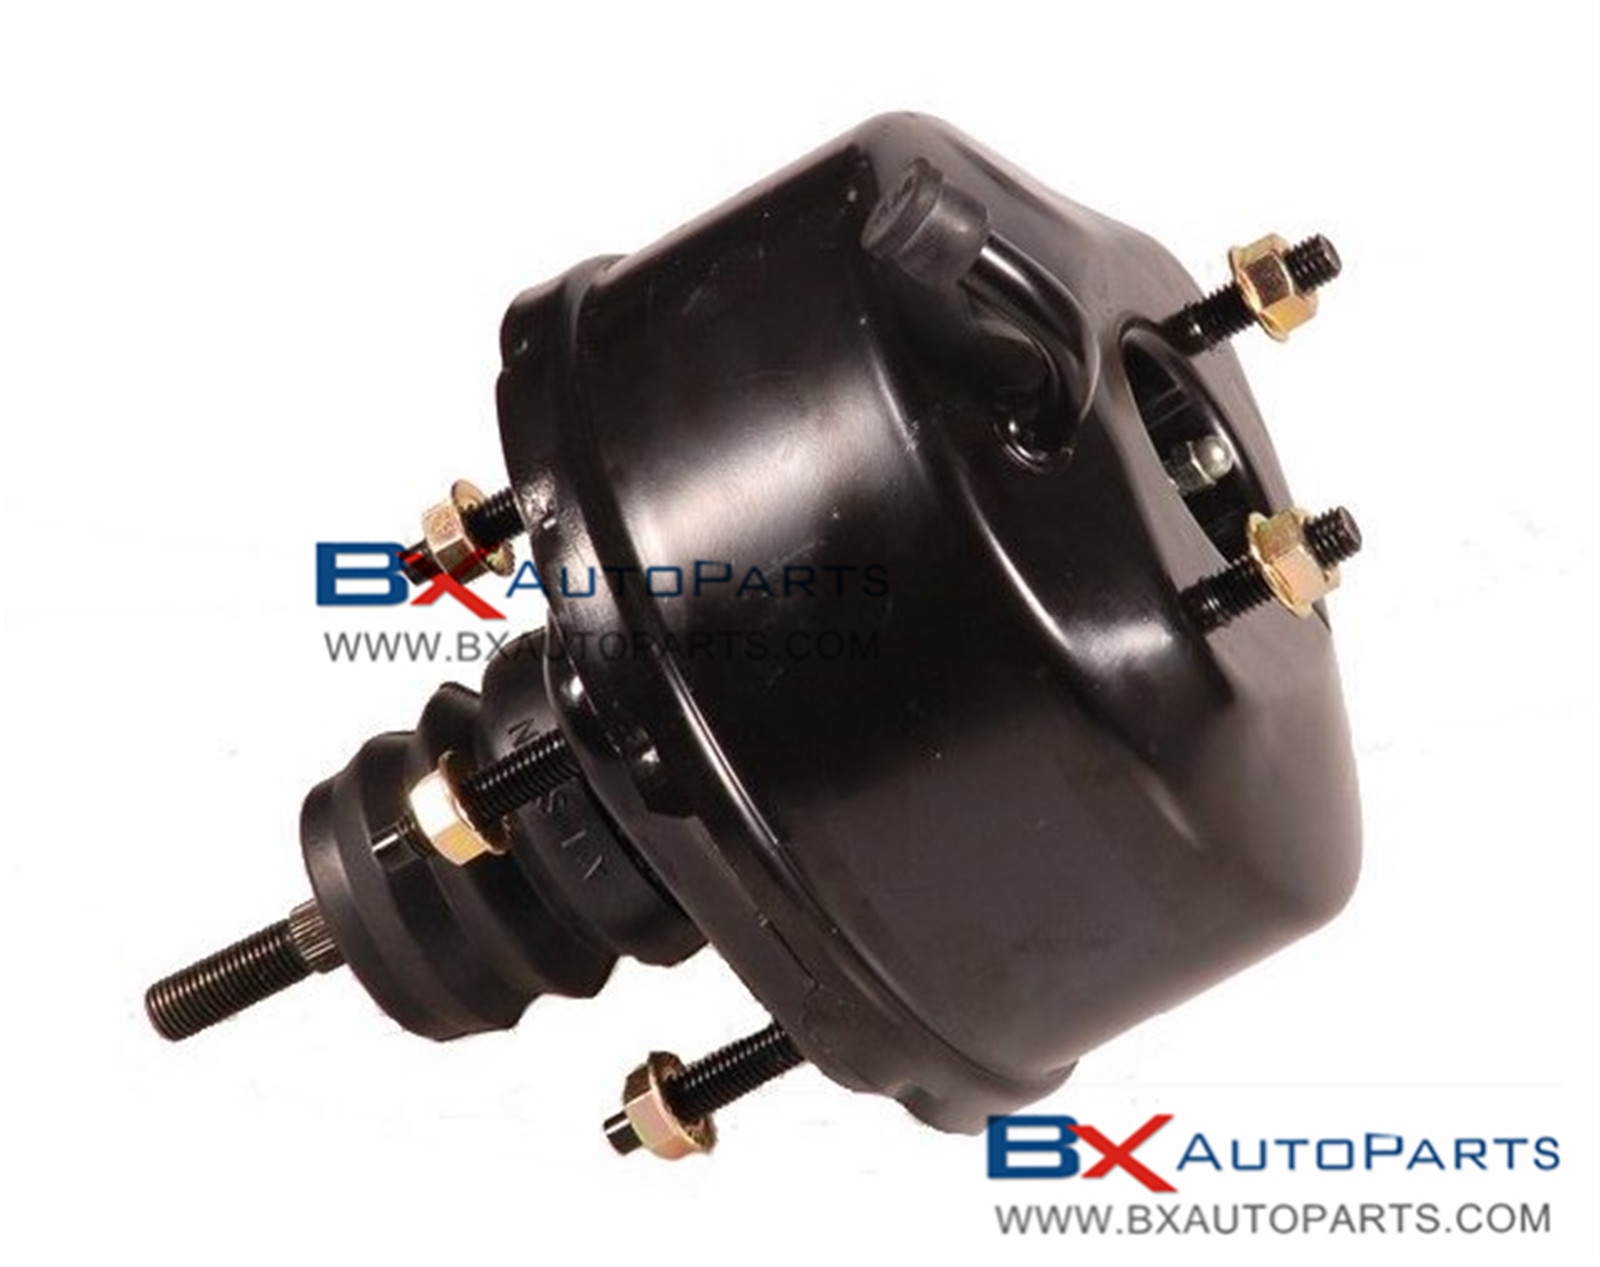 44610-10070 BRAKE BOOSTER  For TOYOTA STARLET 1984-1989 EP7# NP70